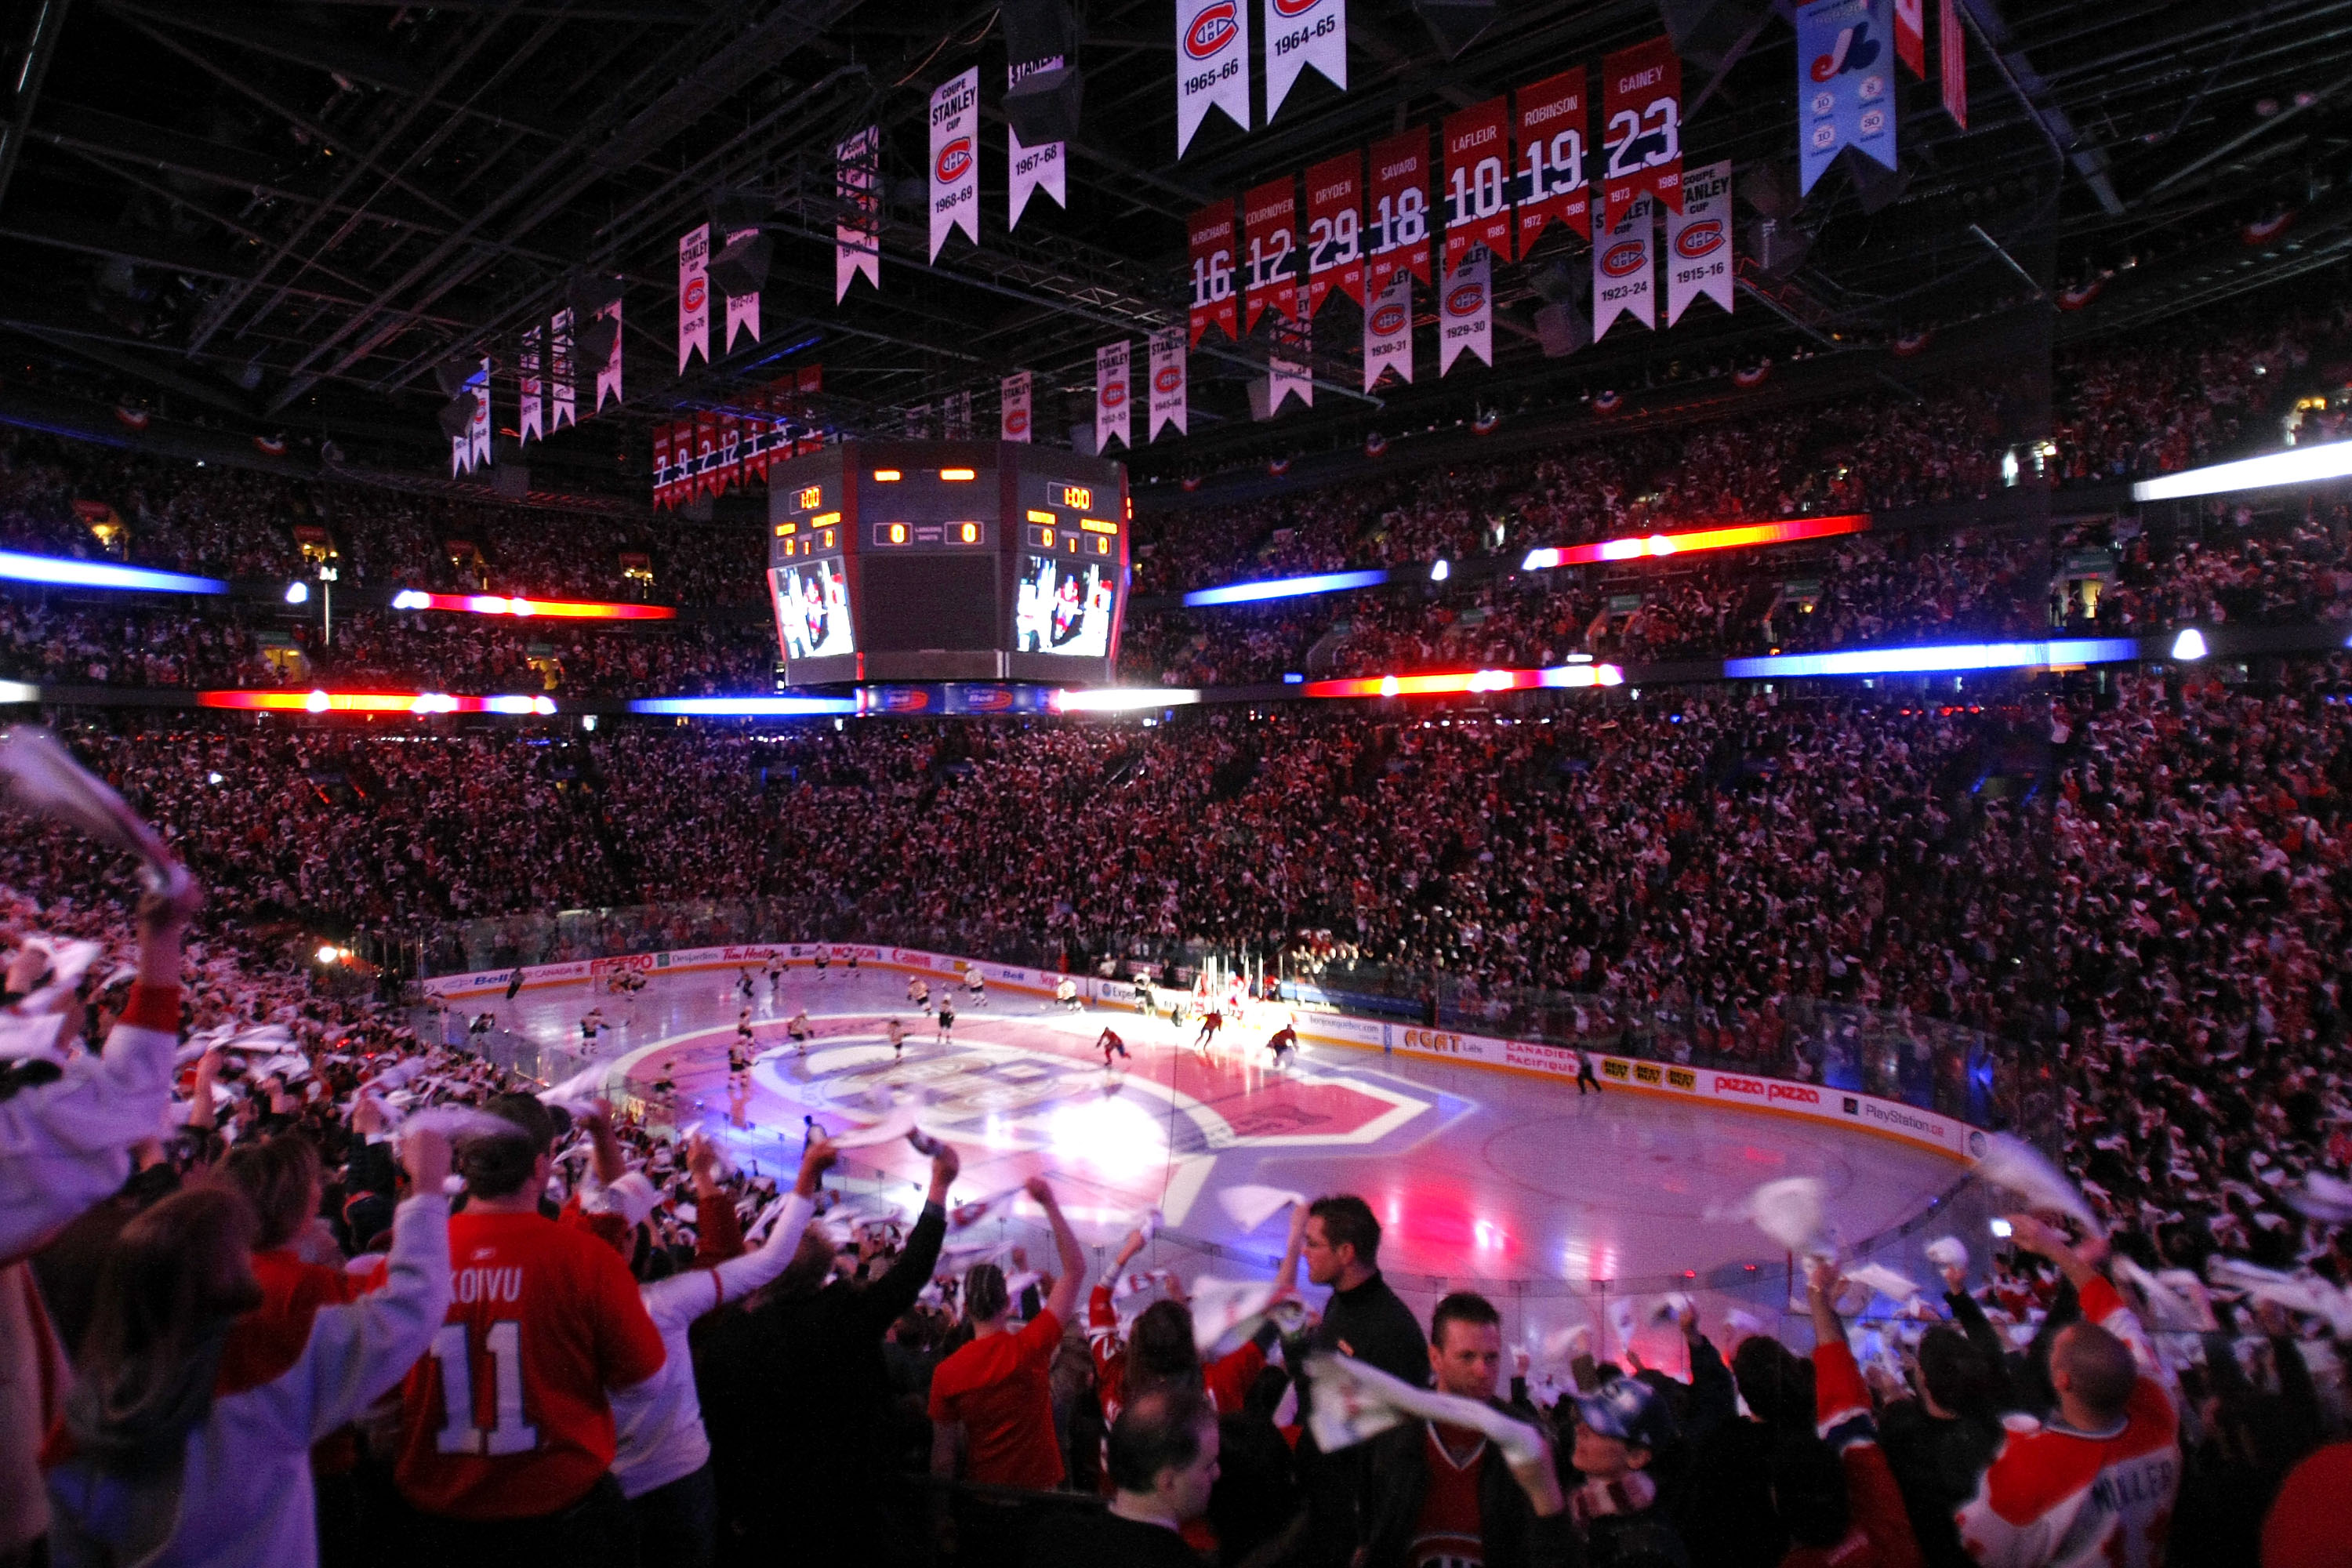 MONTREAL - APRIL 10: Fans cheer as the Montreal Canadiens take to the ice to face the Boston Bruins during Game One of the 2008 NHL Eastern Conference Quarterfinals at the Bell Centre April 10, 2008 in Montreal, Quebec, Canada. (Photo By Dave Sandford/Getty Images)